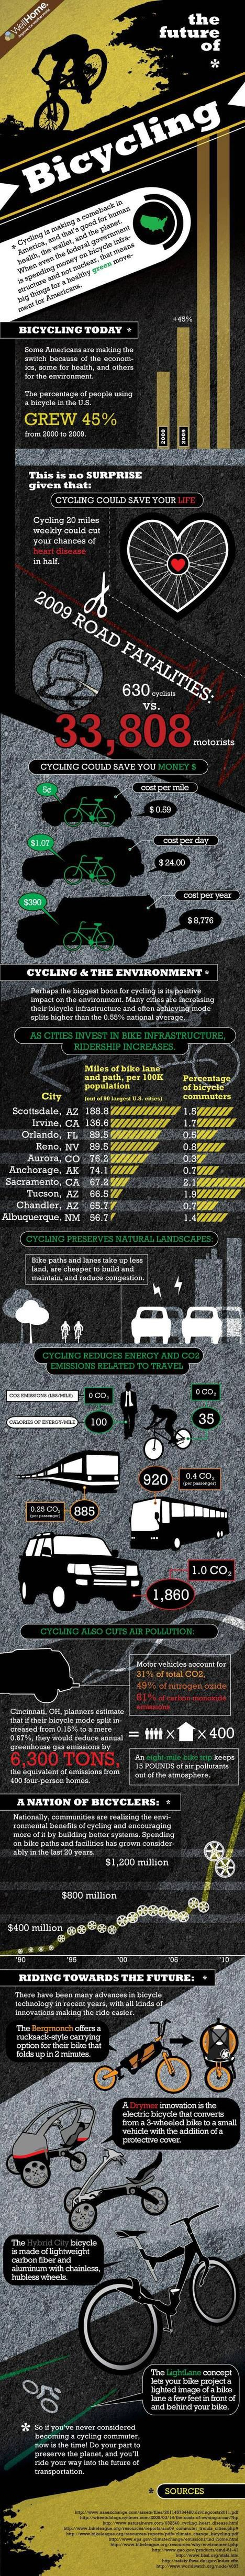 bicycling-facts